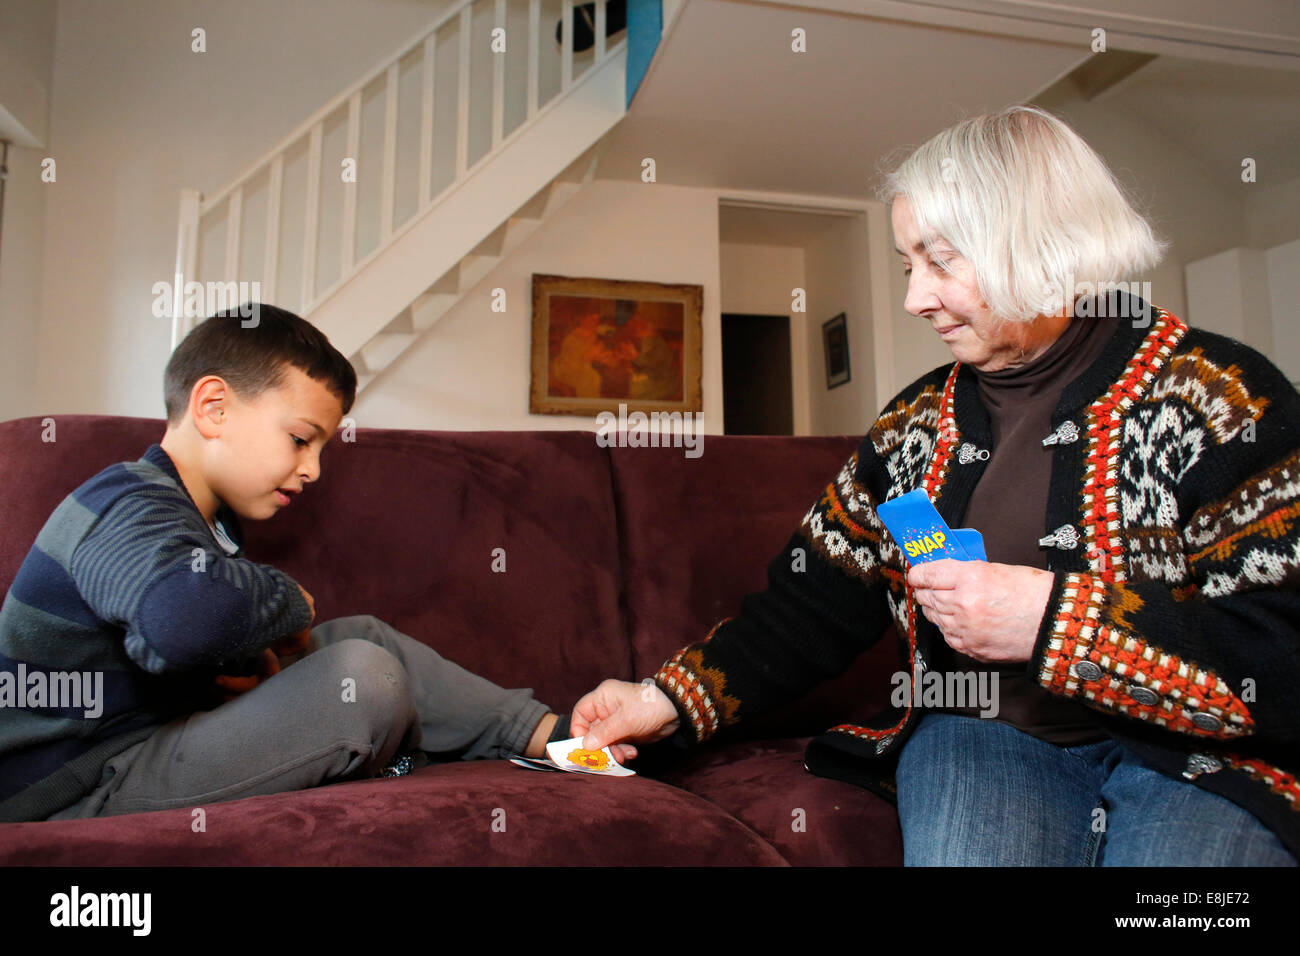 7-year-old boy playing cards with his grandmother - Stock Image